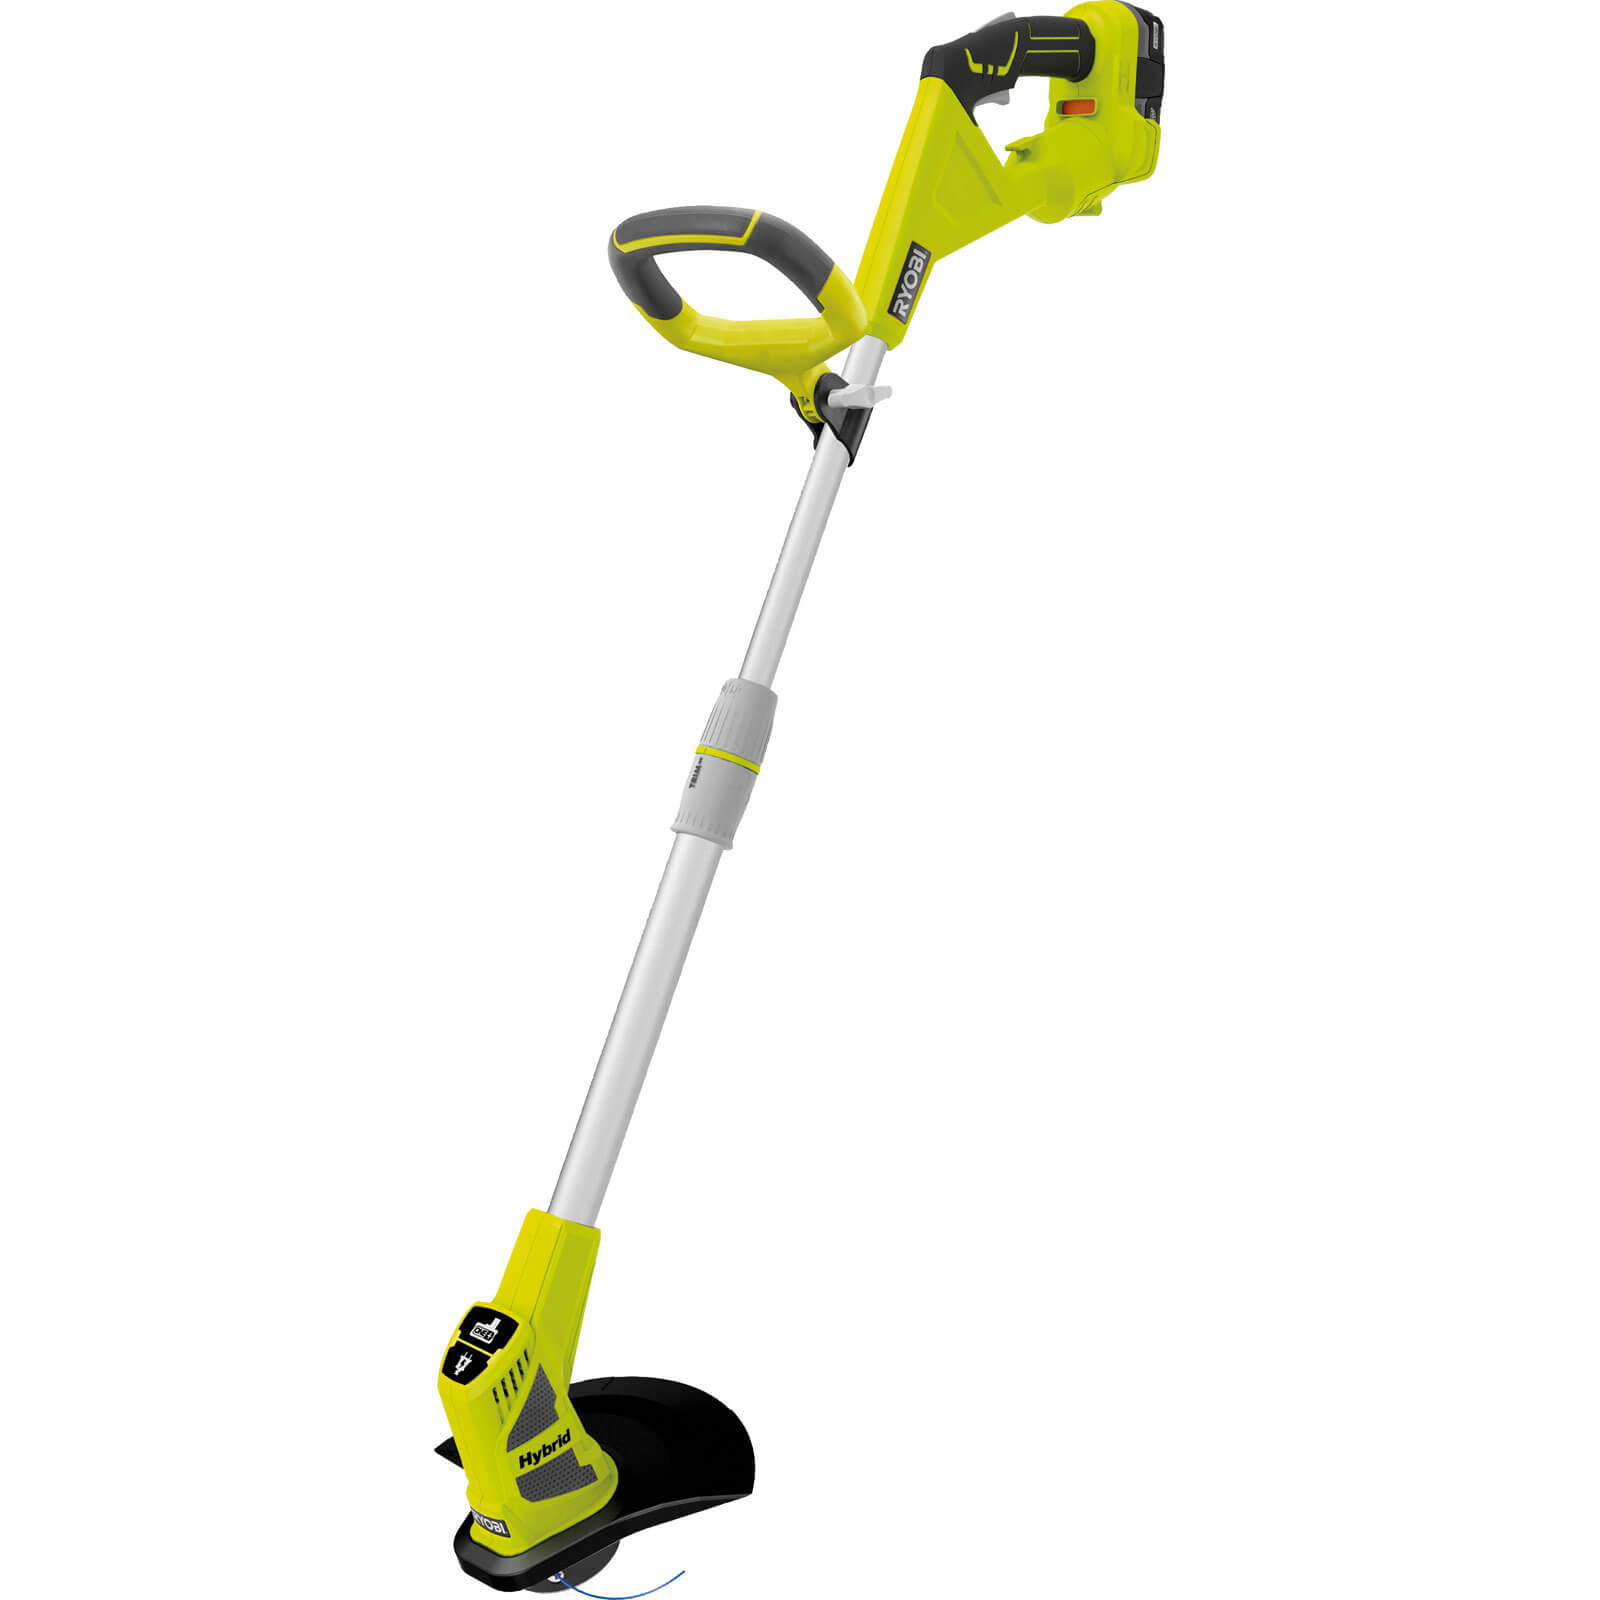 Ryobi RLT1830H13 ONE+ 18v & 240v Hybrid Grass Trimmer 250 - 300mm Cut Width with 1 Lithium Ion Battery 1.3ah